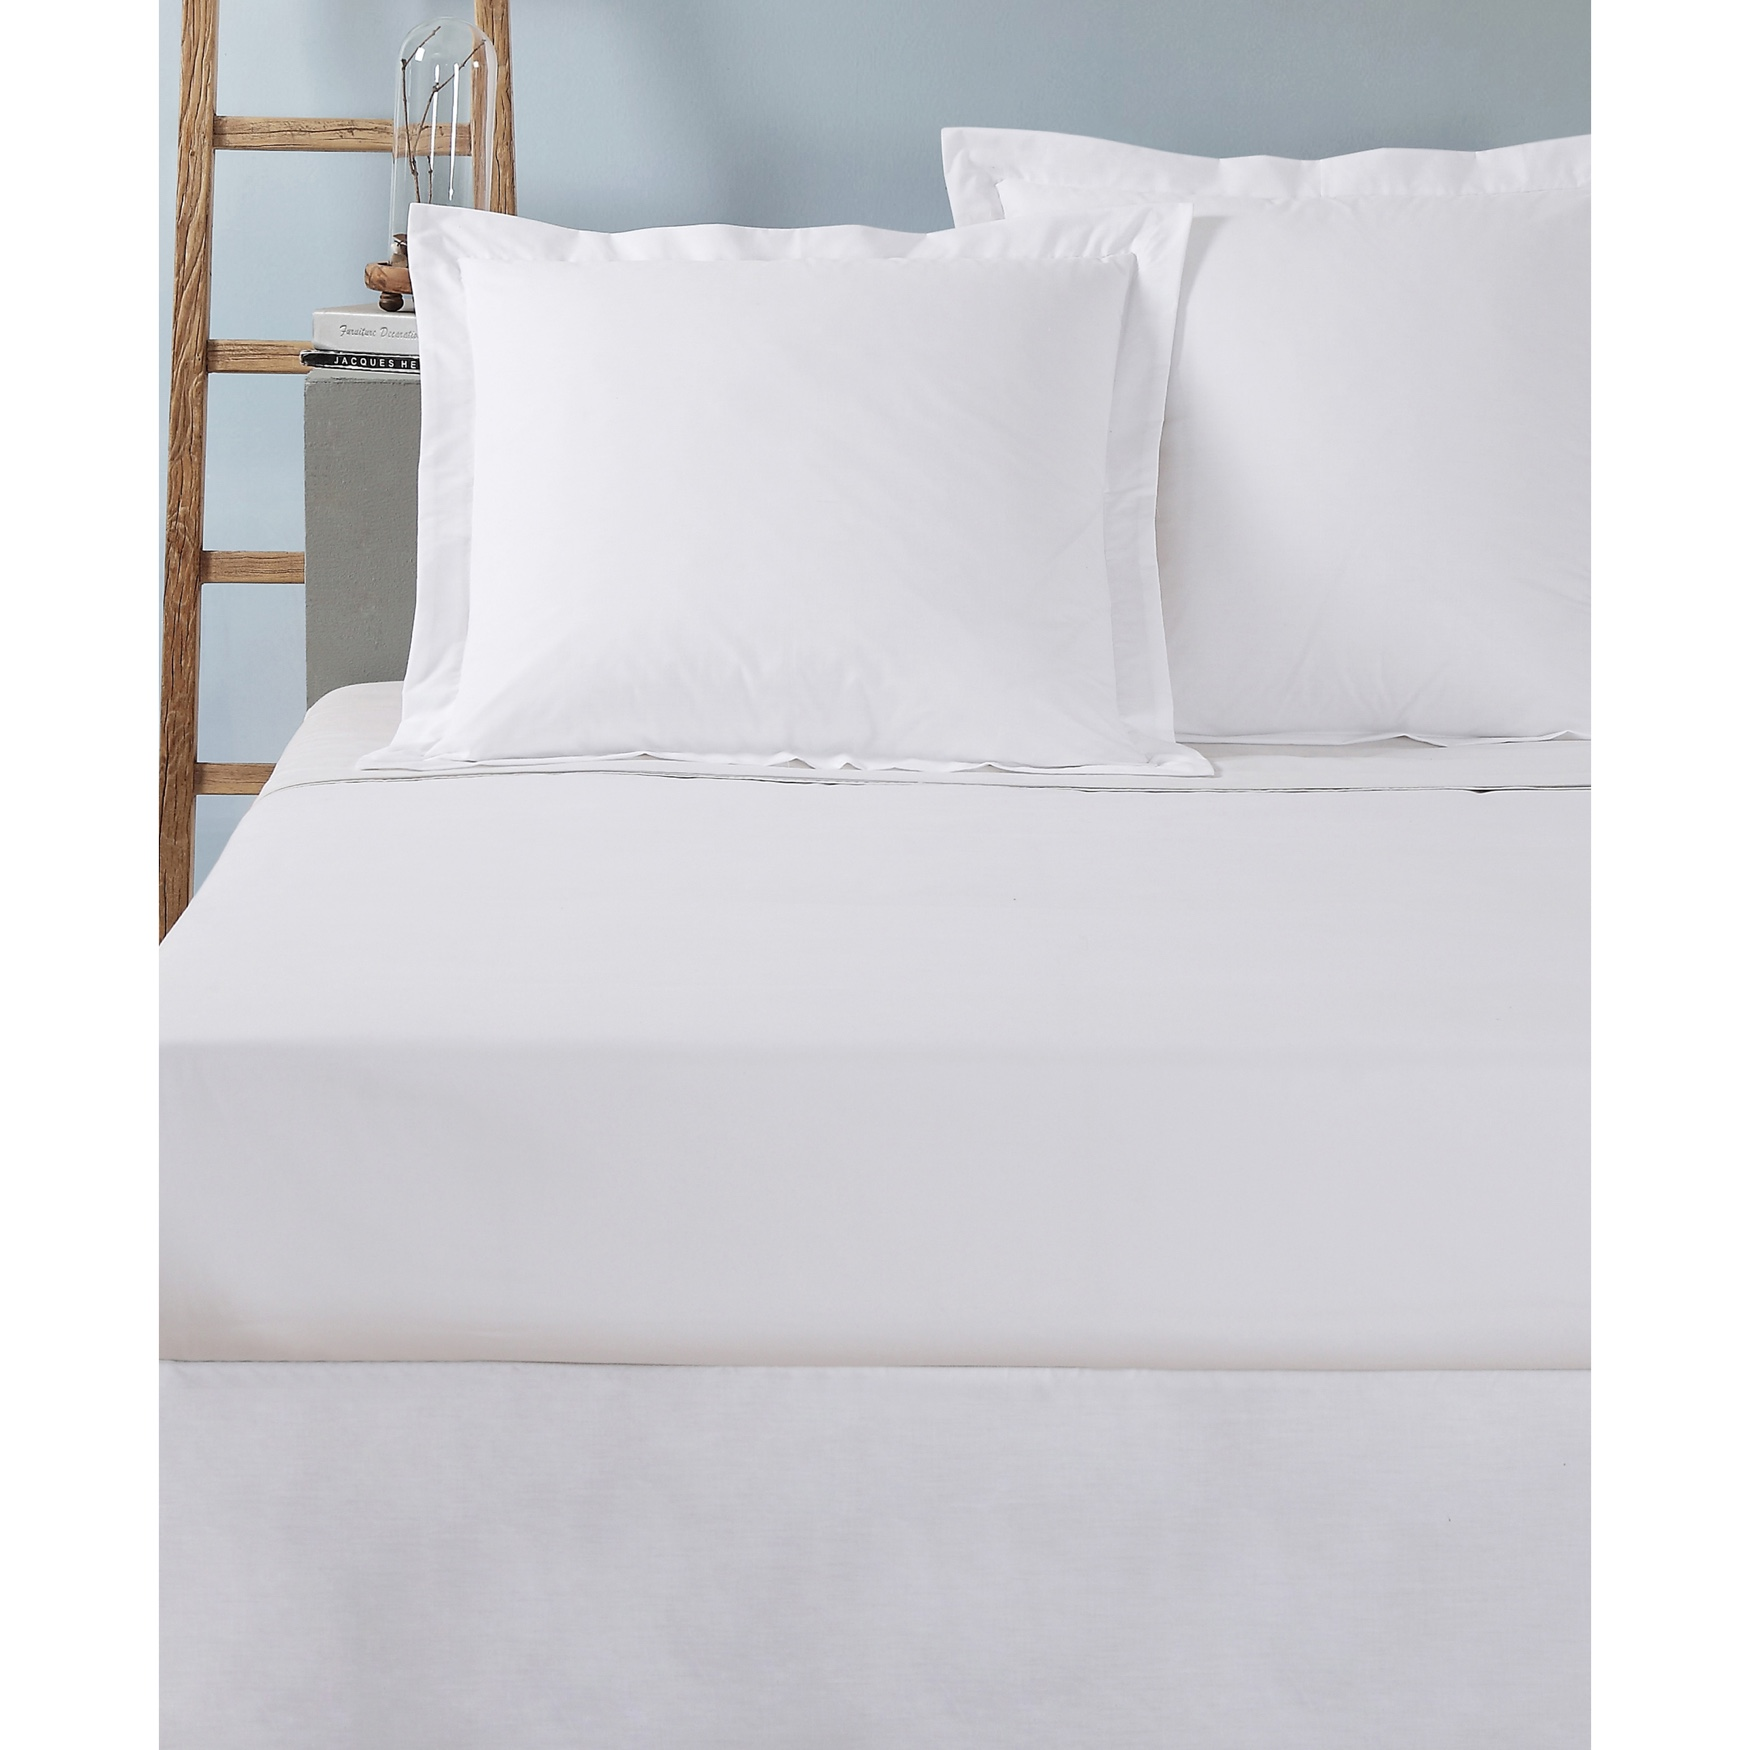 Today's Home Cotton Rich Tailored 2-Pack Euro Sham,